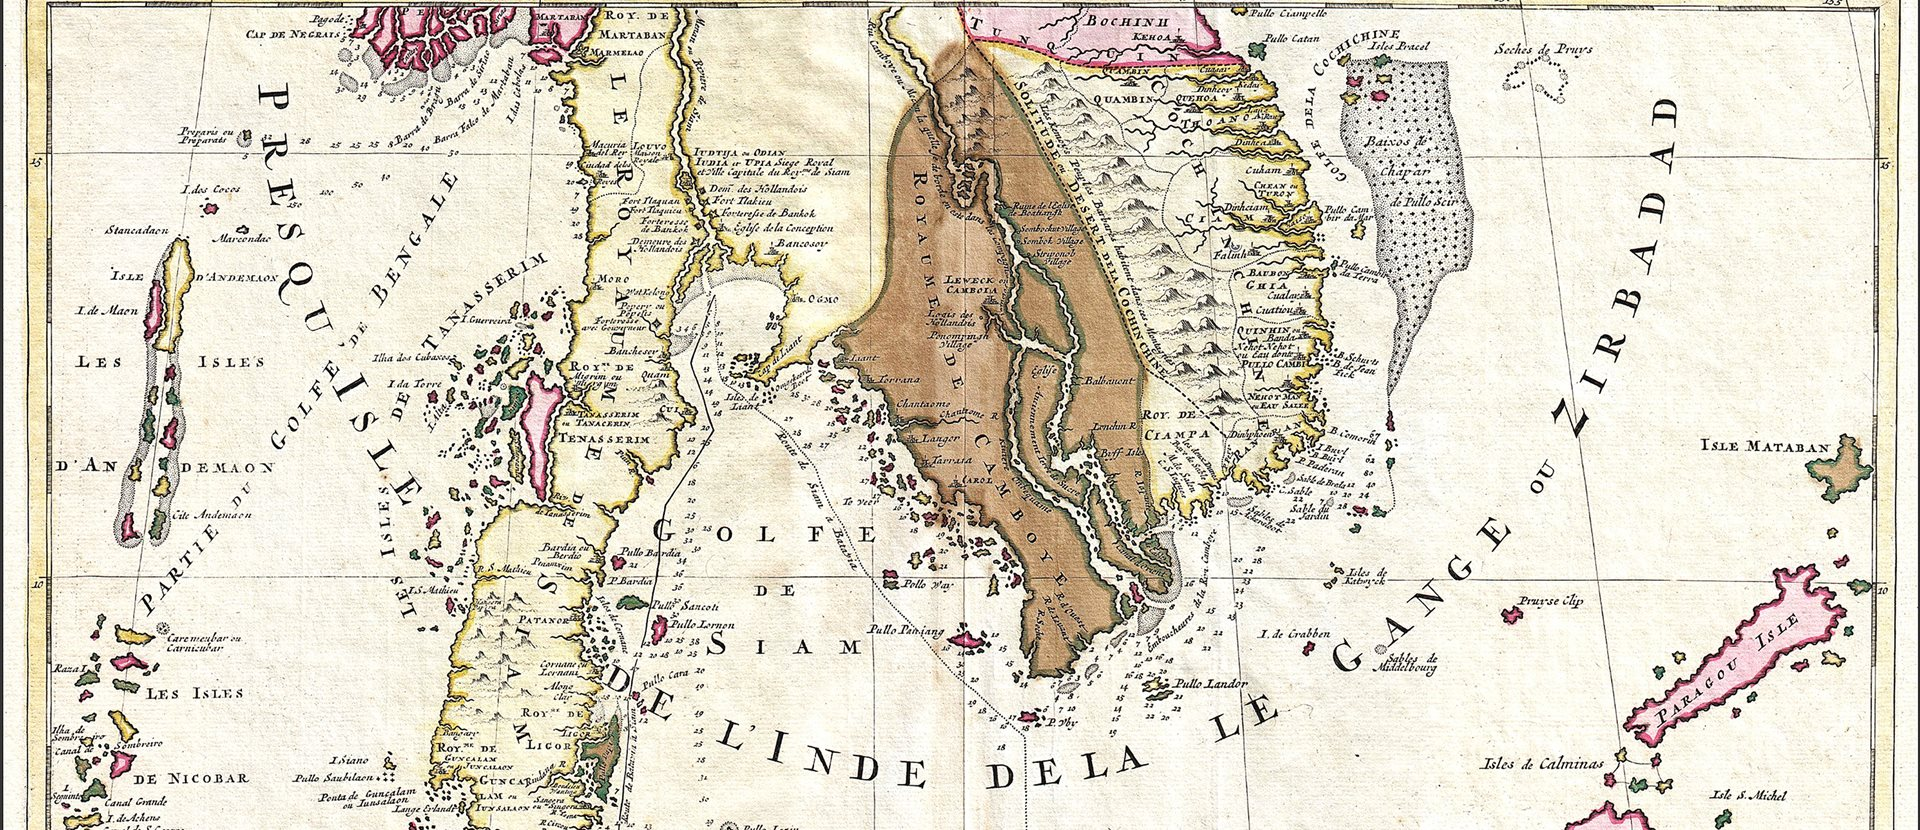 A coloured map from 1710 of the Southeast Asia region